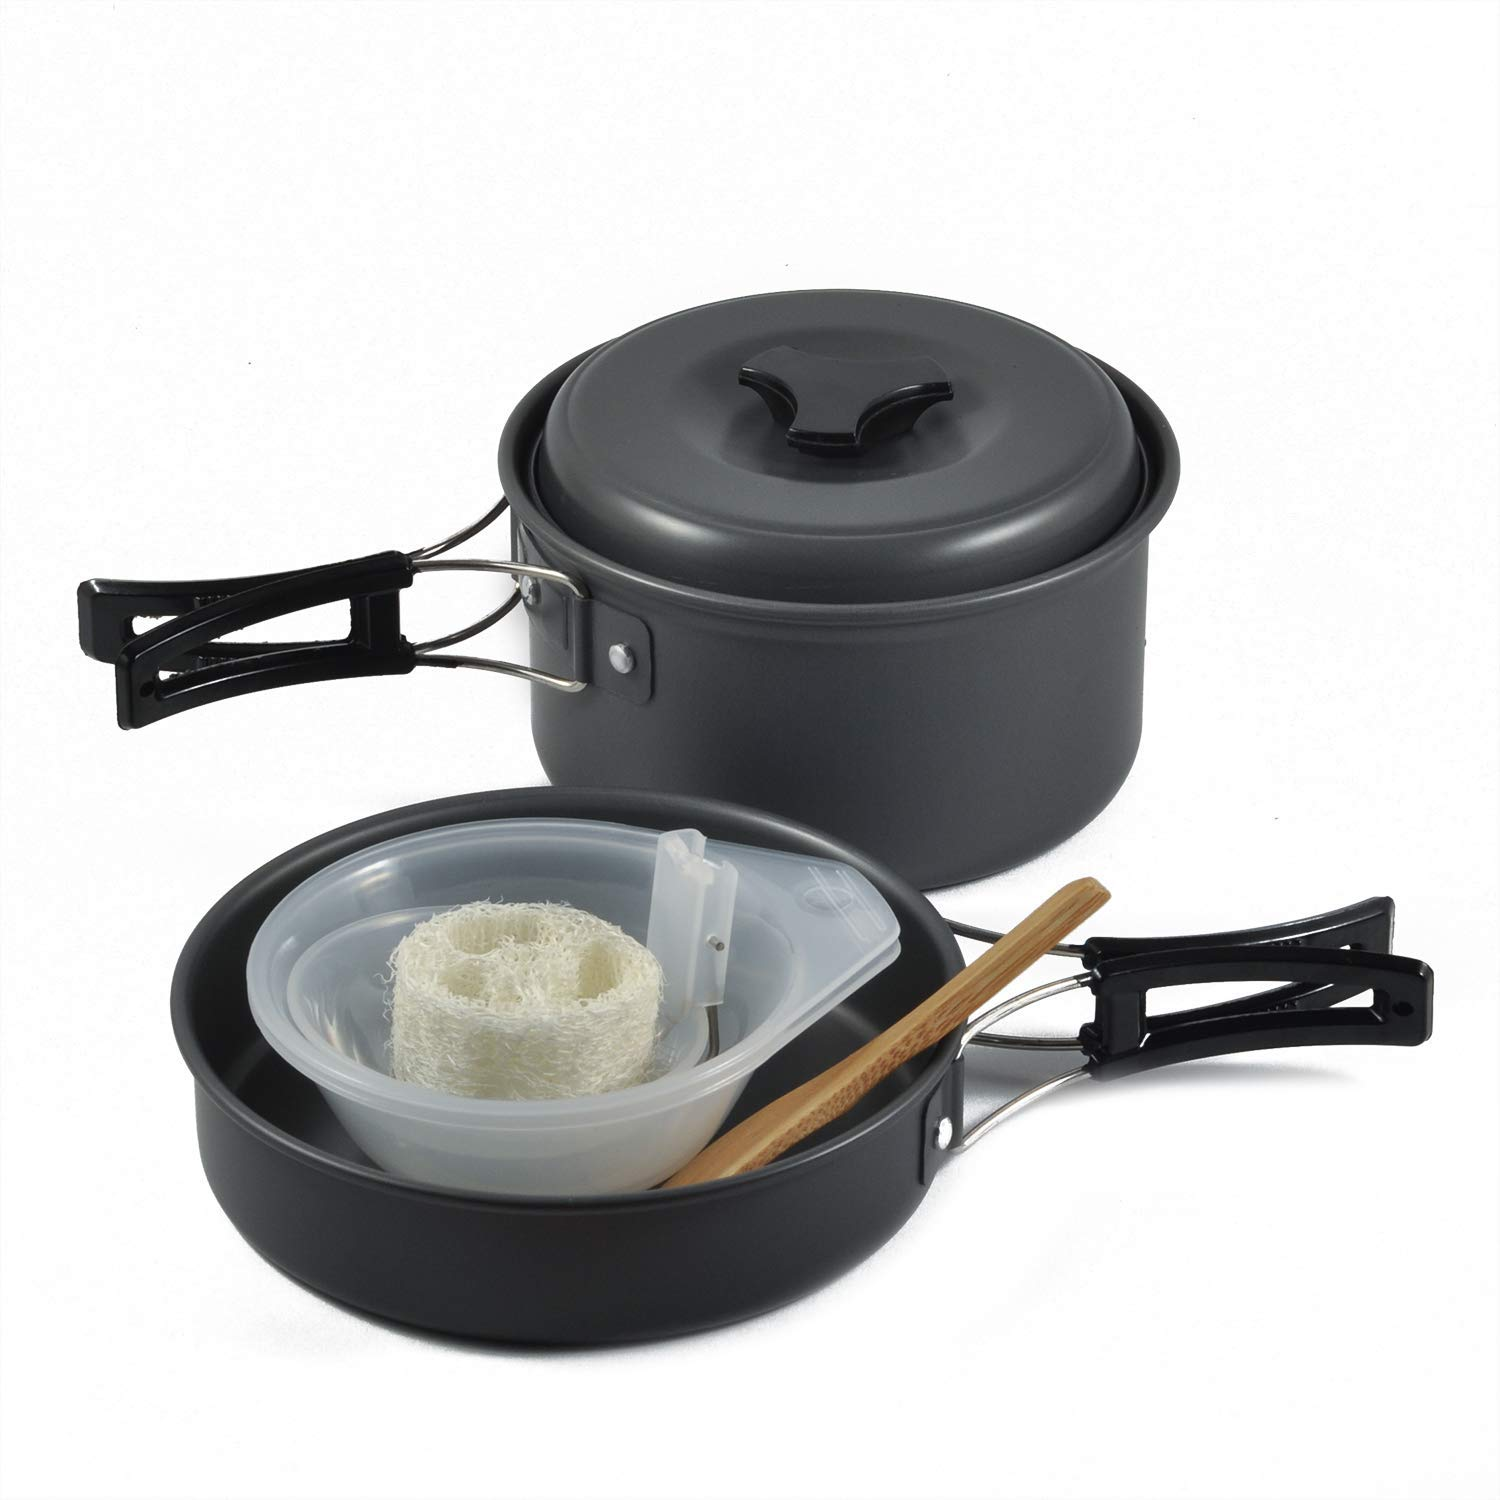 OuterEQ Camping Cookware Outdoor Mess Kit